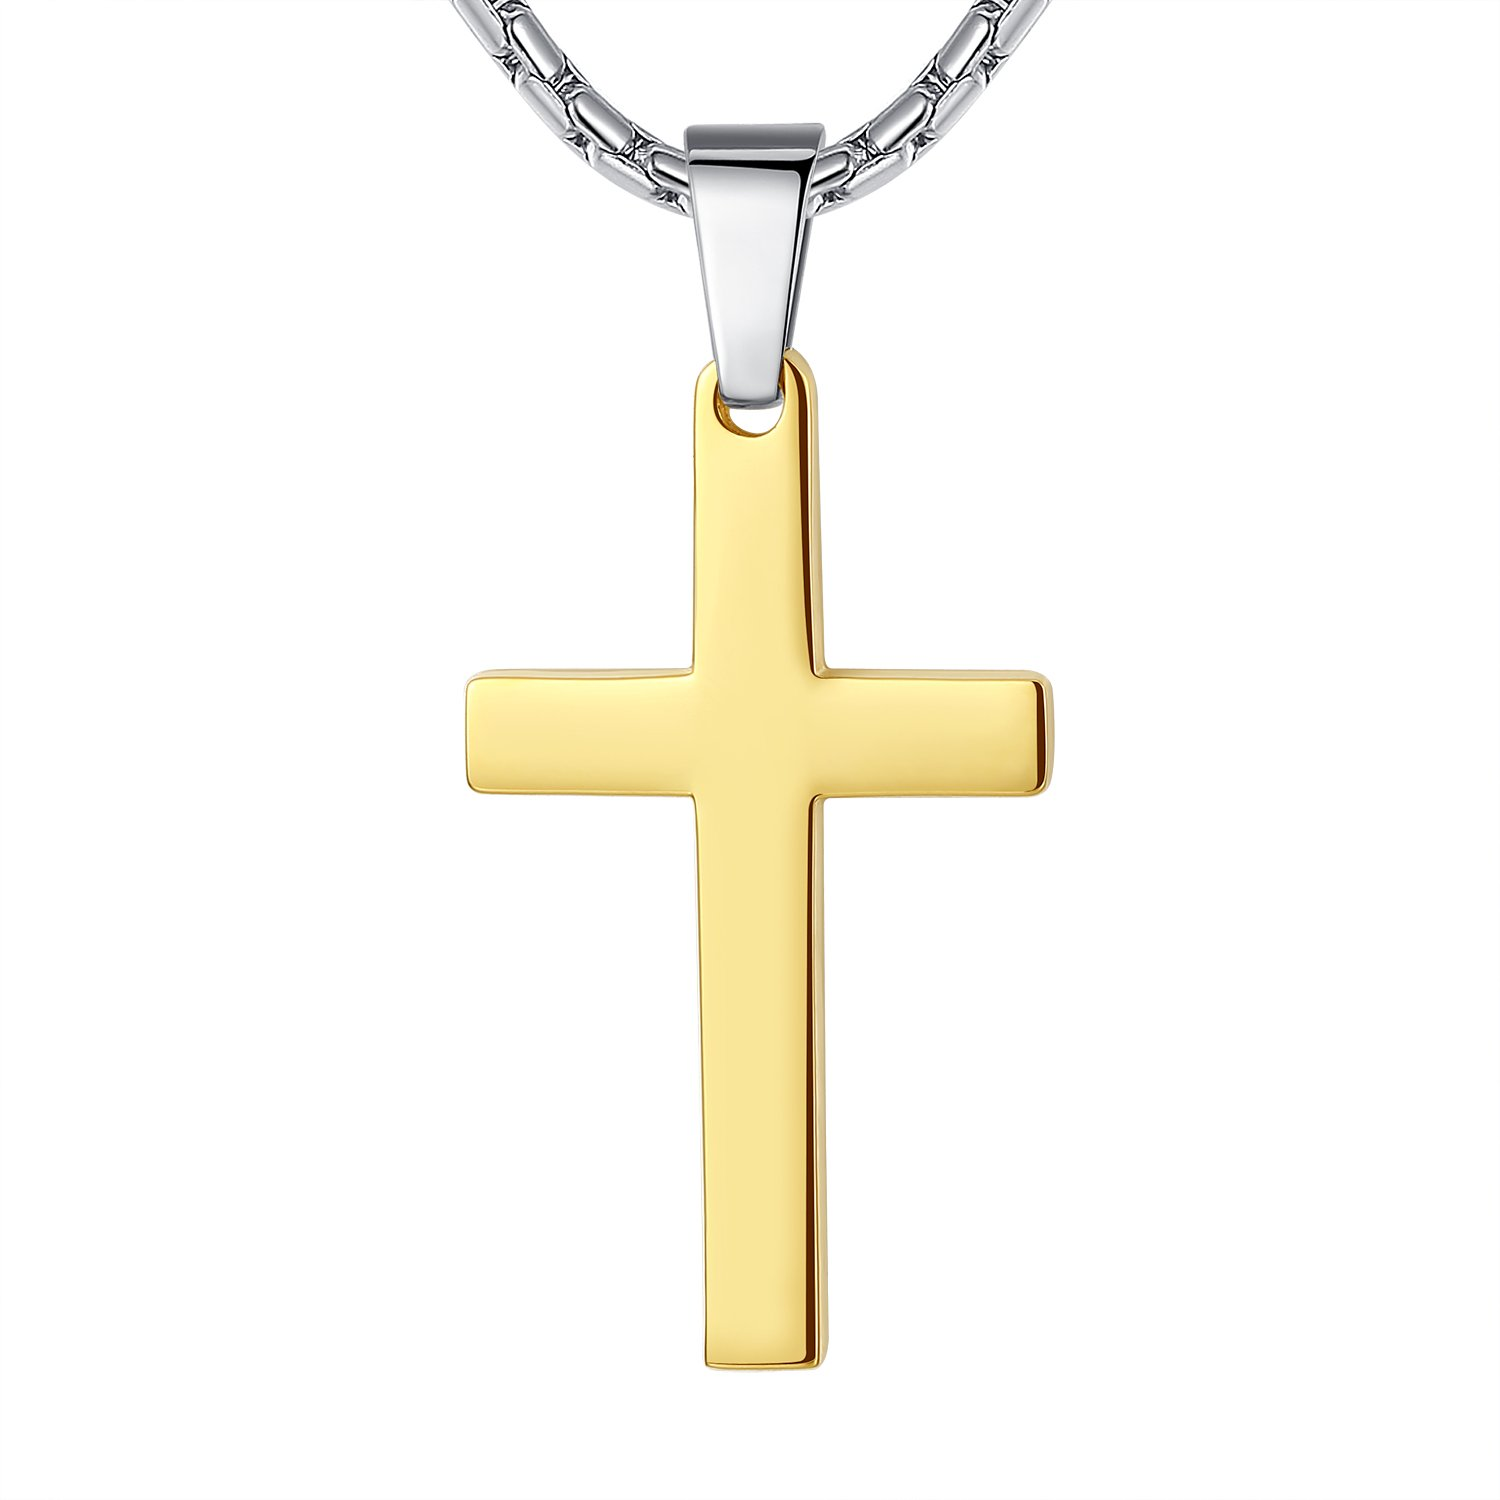 Aoiy Stainless Steel Cross Religious Pendant Necklace, Unisex, 21